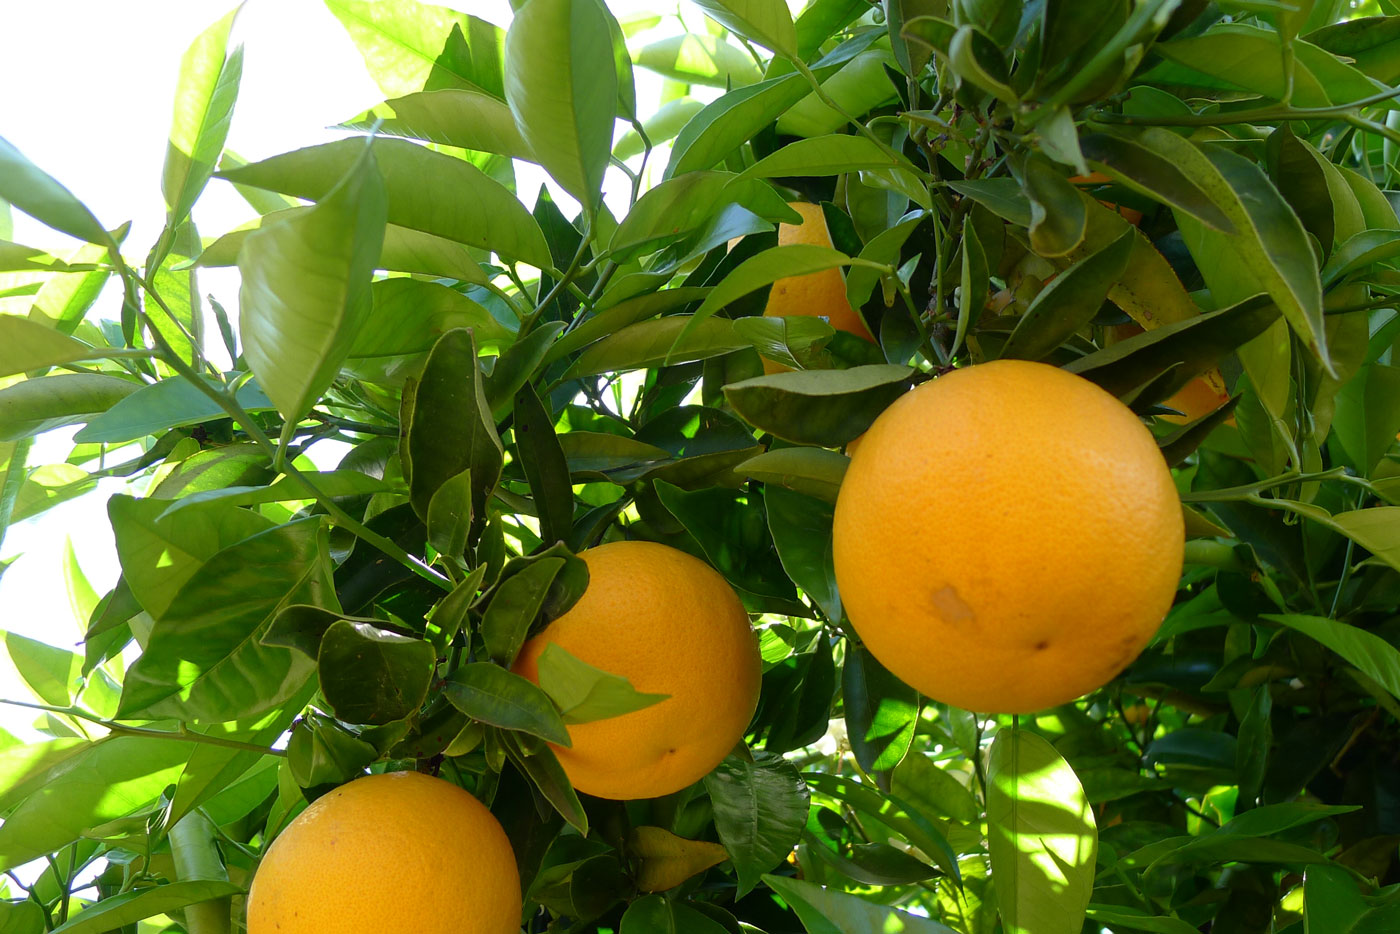 ripe oranges in the tree